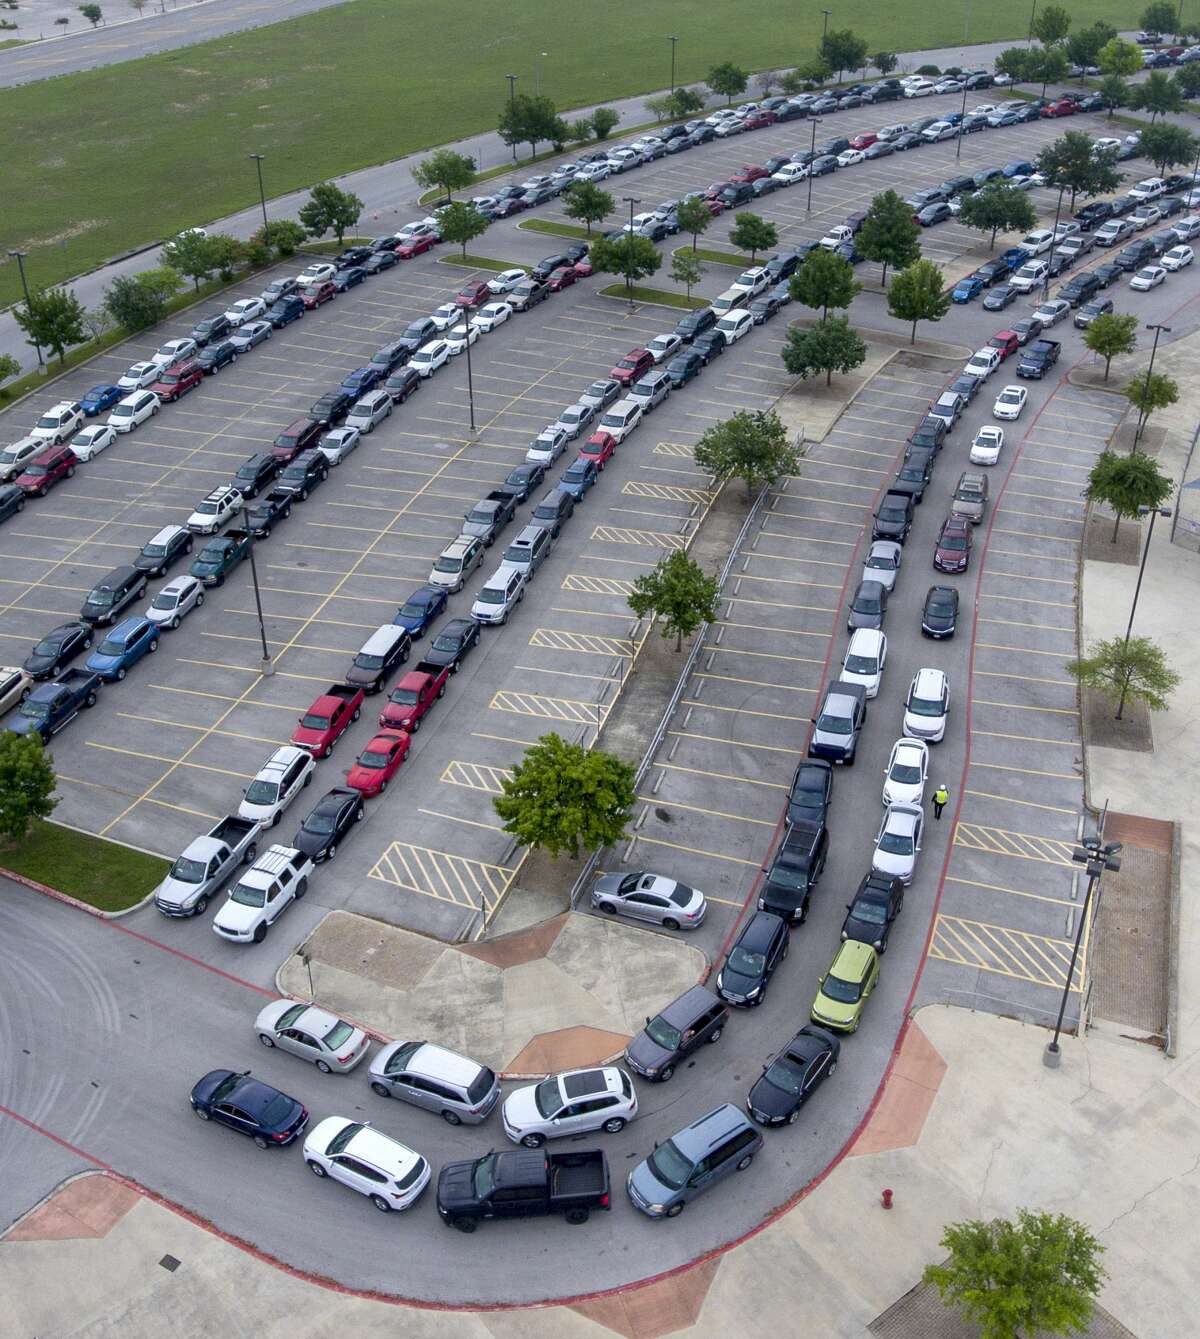 Vehicles queue Tuesday, April 7, 2020, in the Heroes Stadium parking lot to receive food aid from the Food Bank. Demand for food aid has skyrocketed since the the start of the COVID-19 coronavirus pandemic.